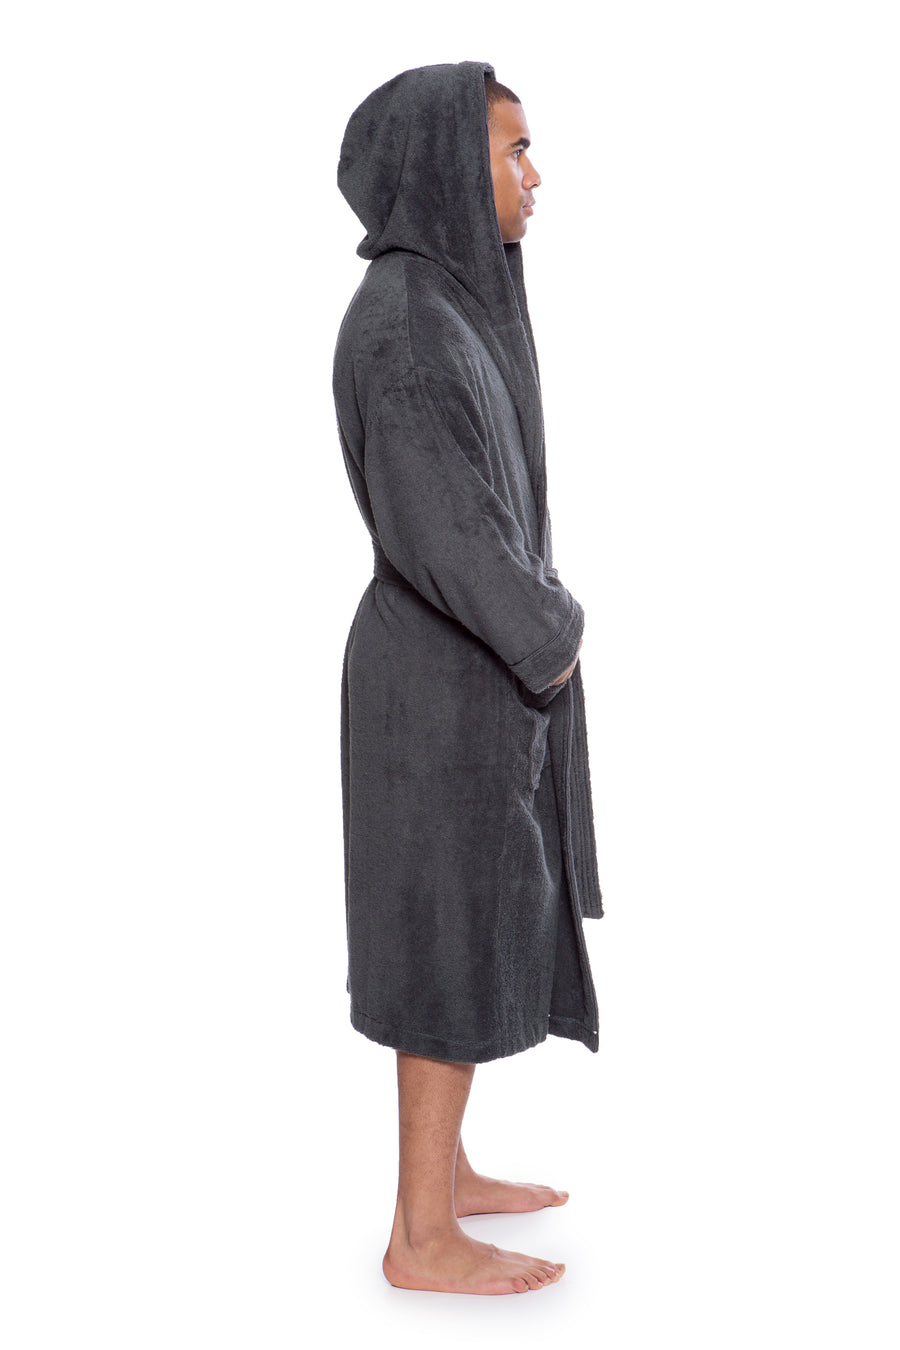 Eklips - Men's Bamboo Viscose Hooded Terry Bath Robe - TexereSilk